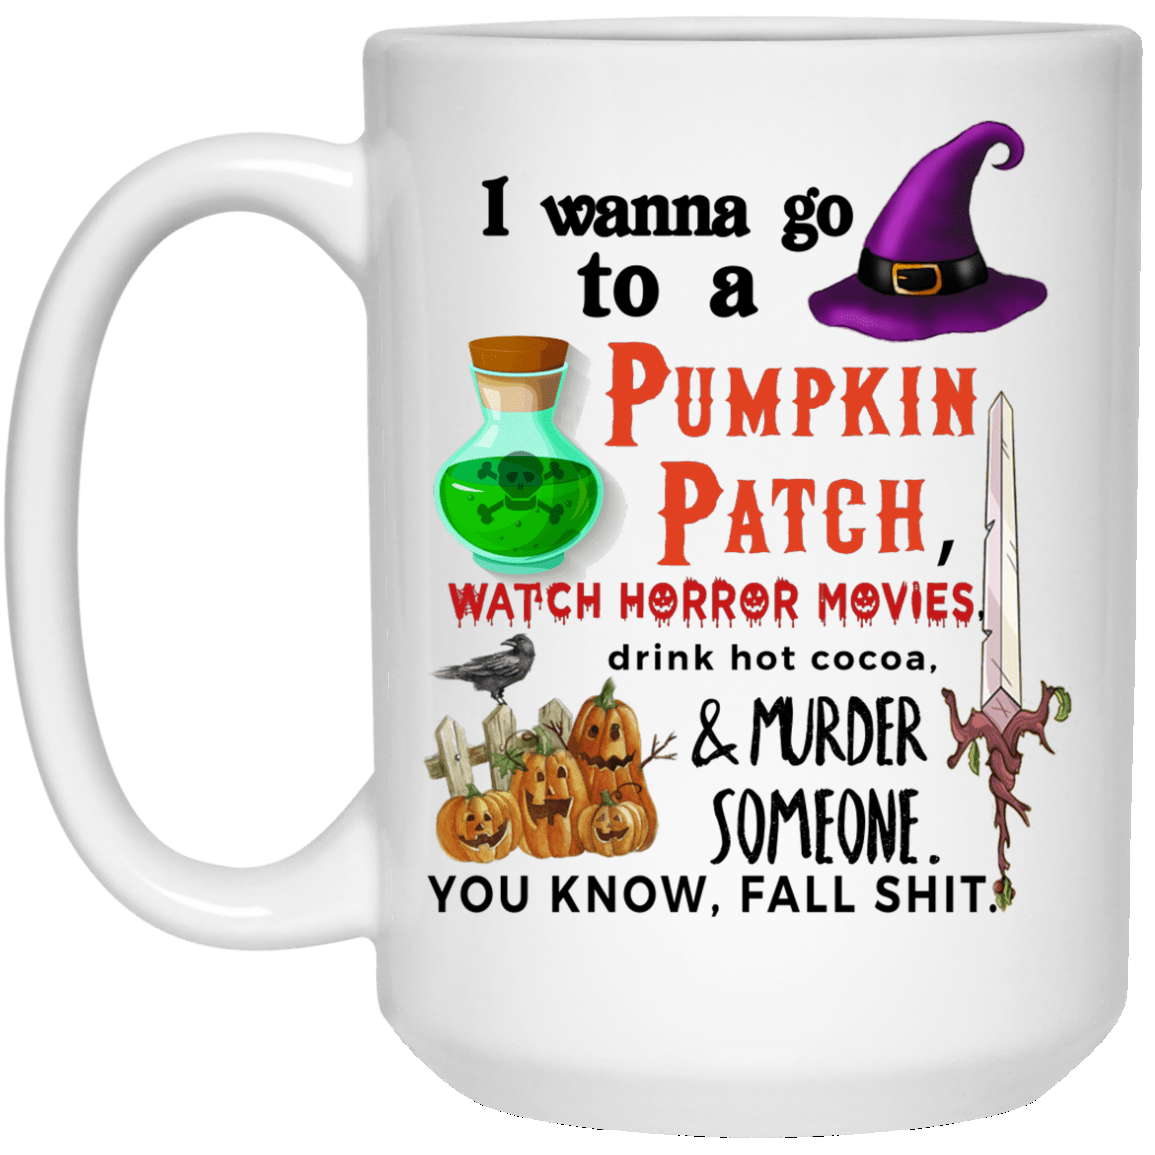 image 1 - I wanna go to pumpkin patch mug